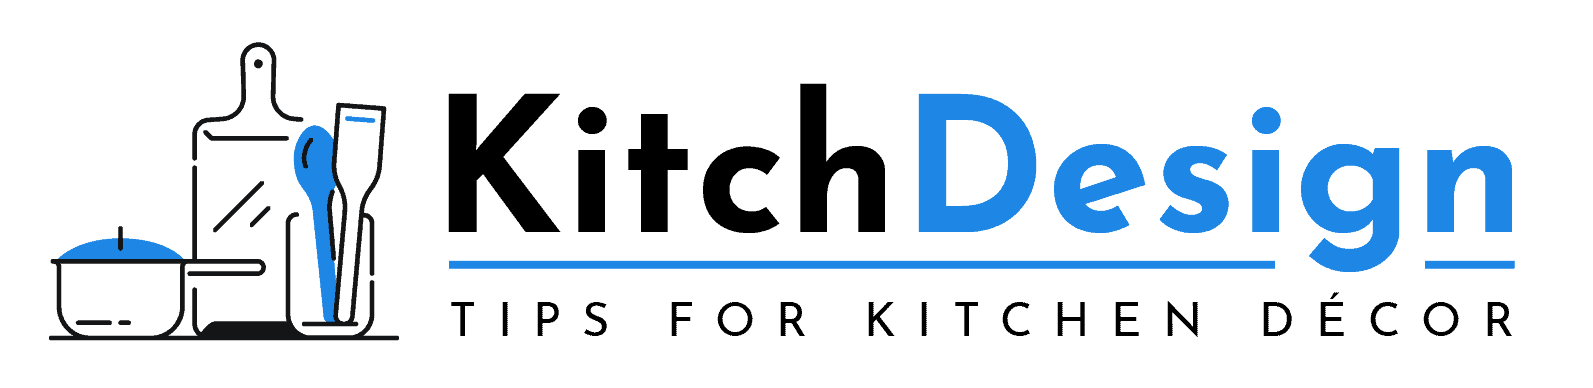 kitchdesign.net